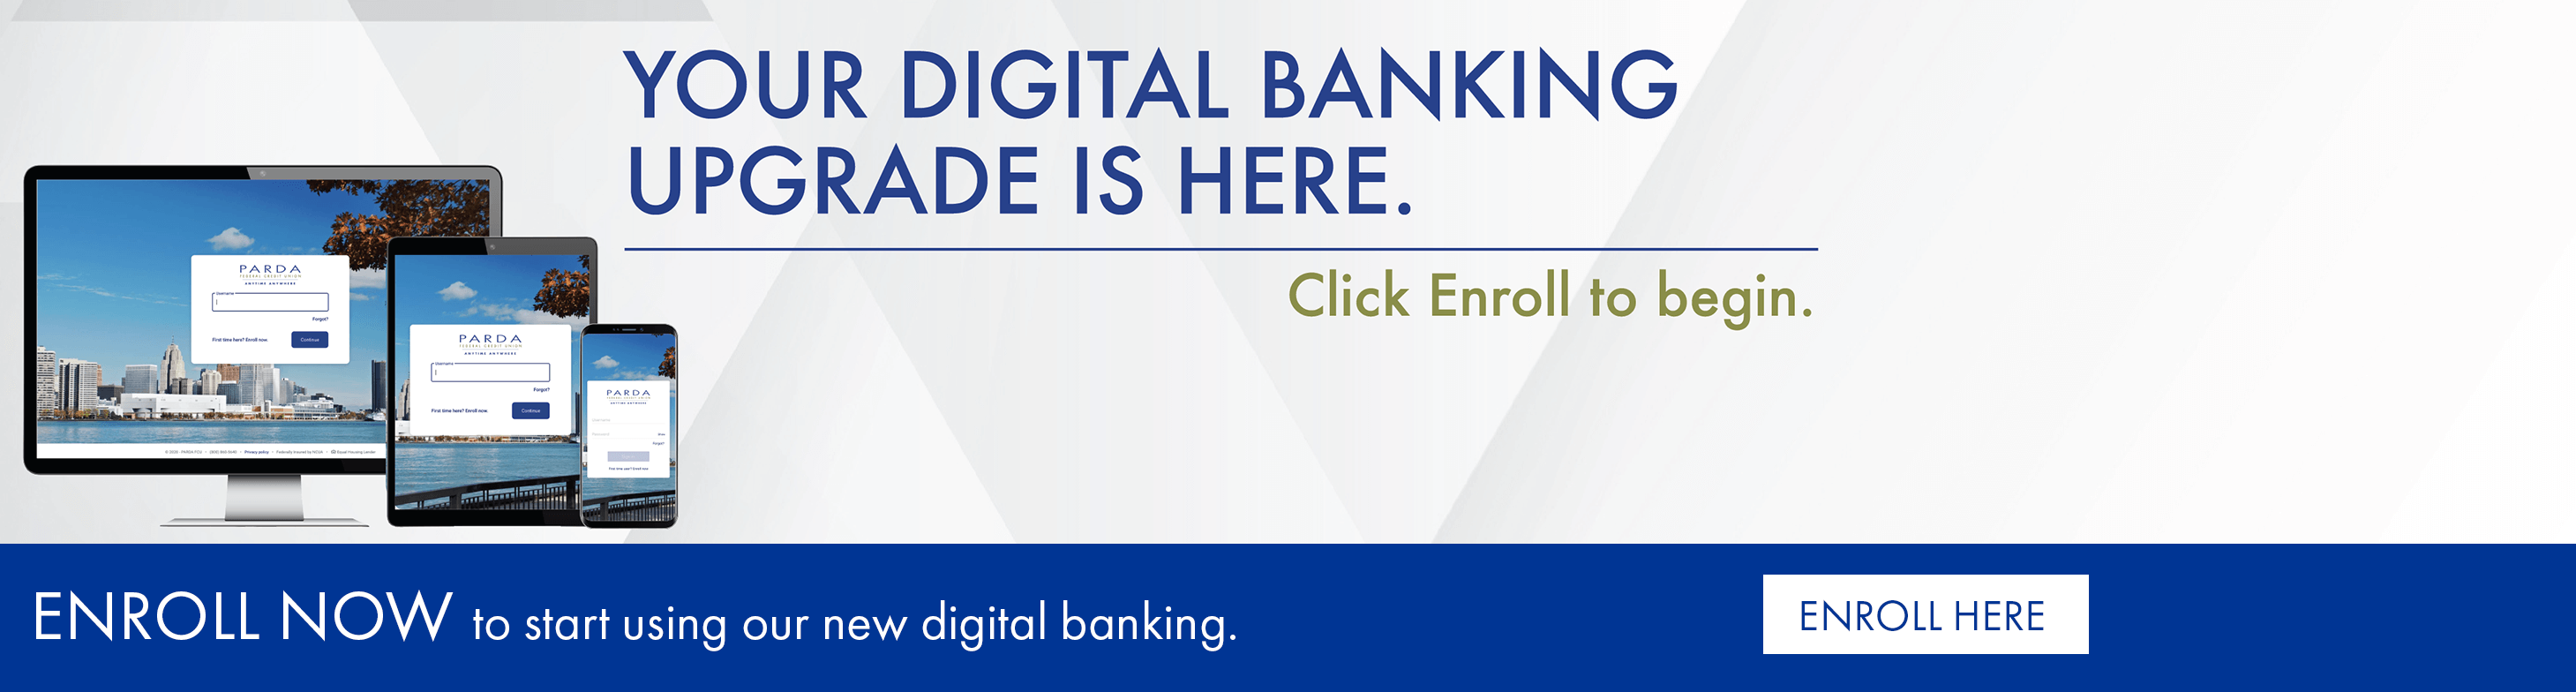 Your digital banking upgrade is here. Click enroll to begin. Enroll now to start using our new digital banking.